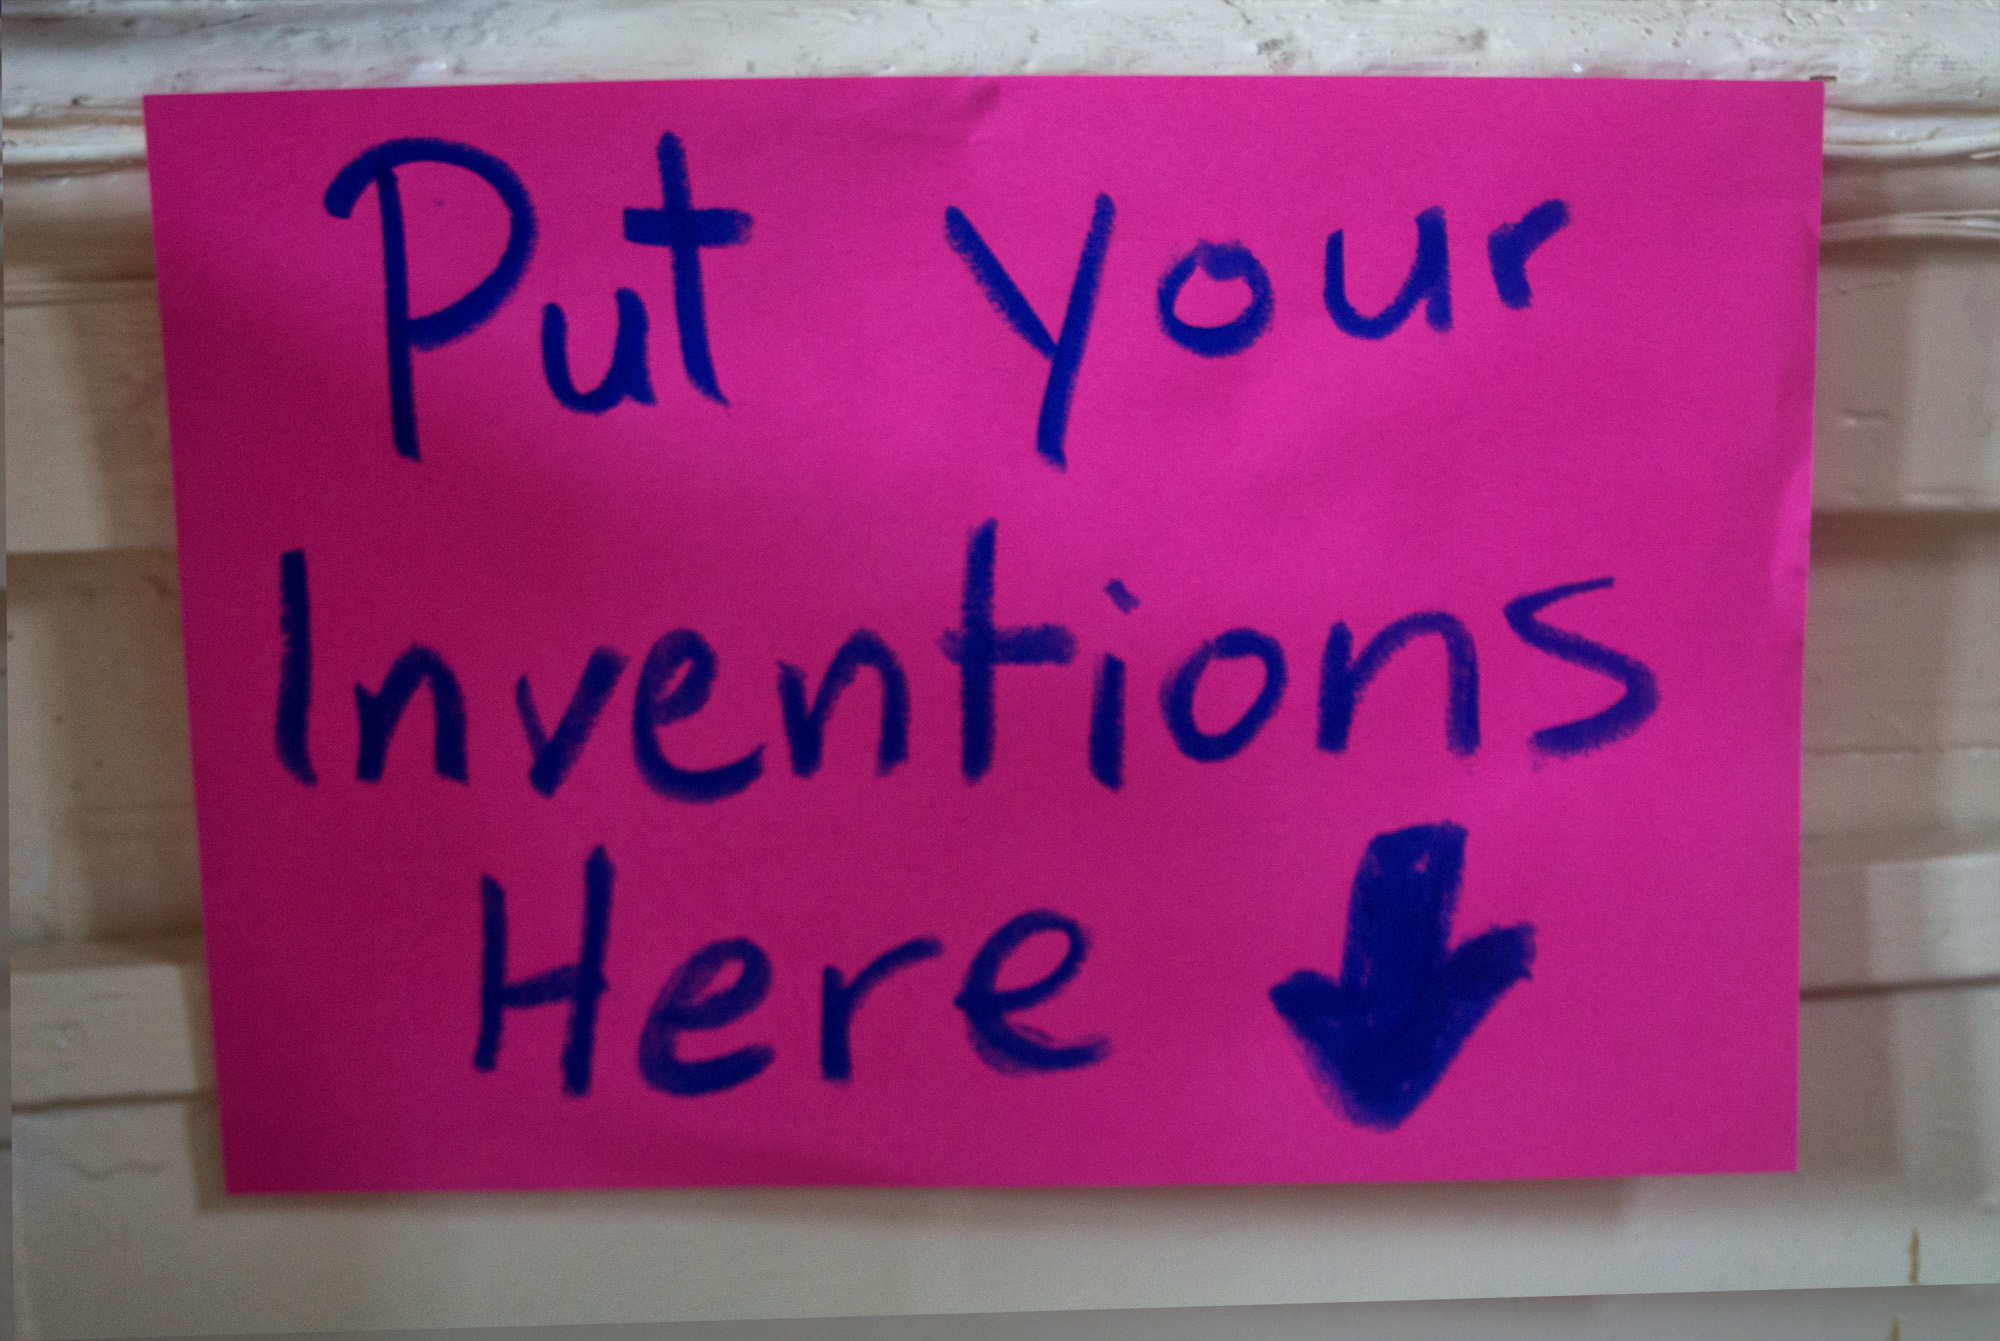 1) Put your inventions here.jpg